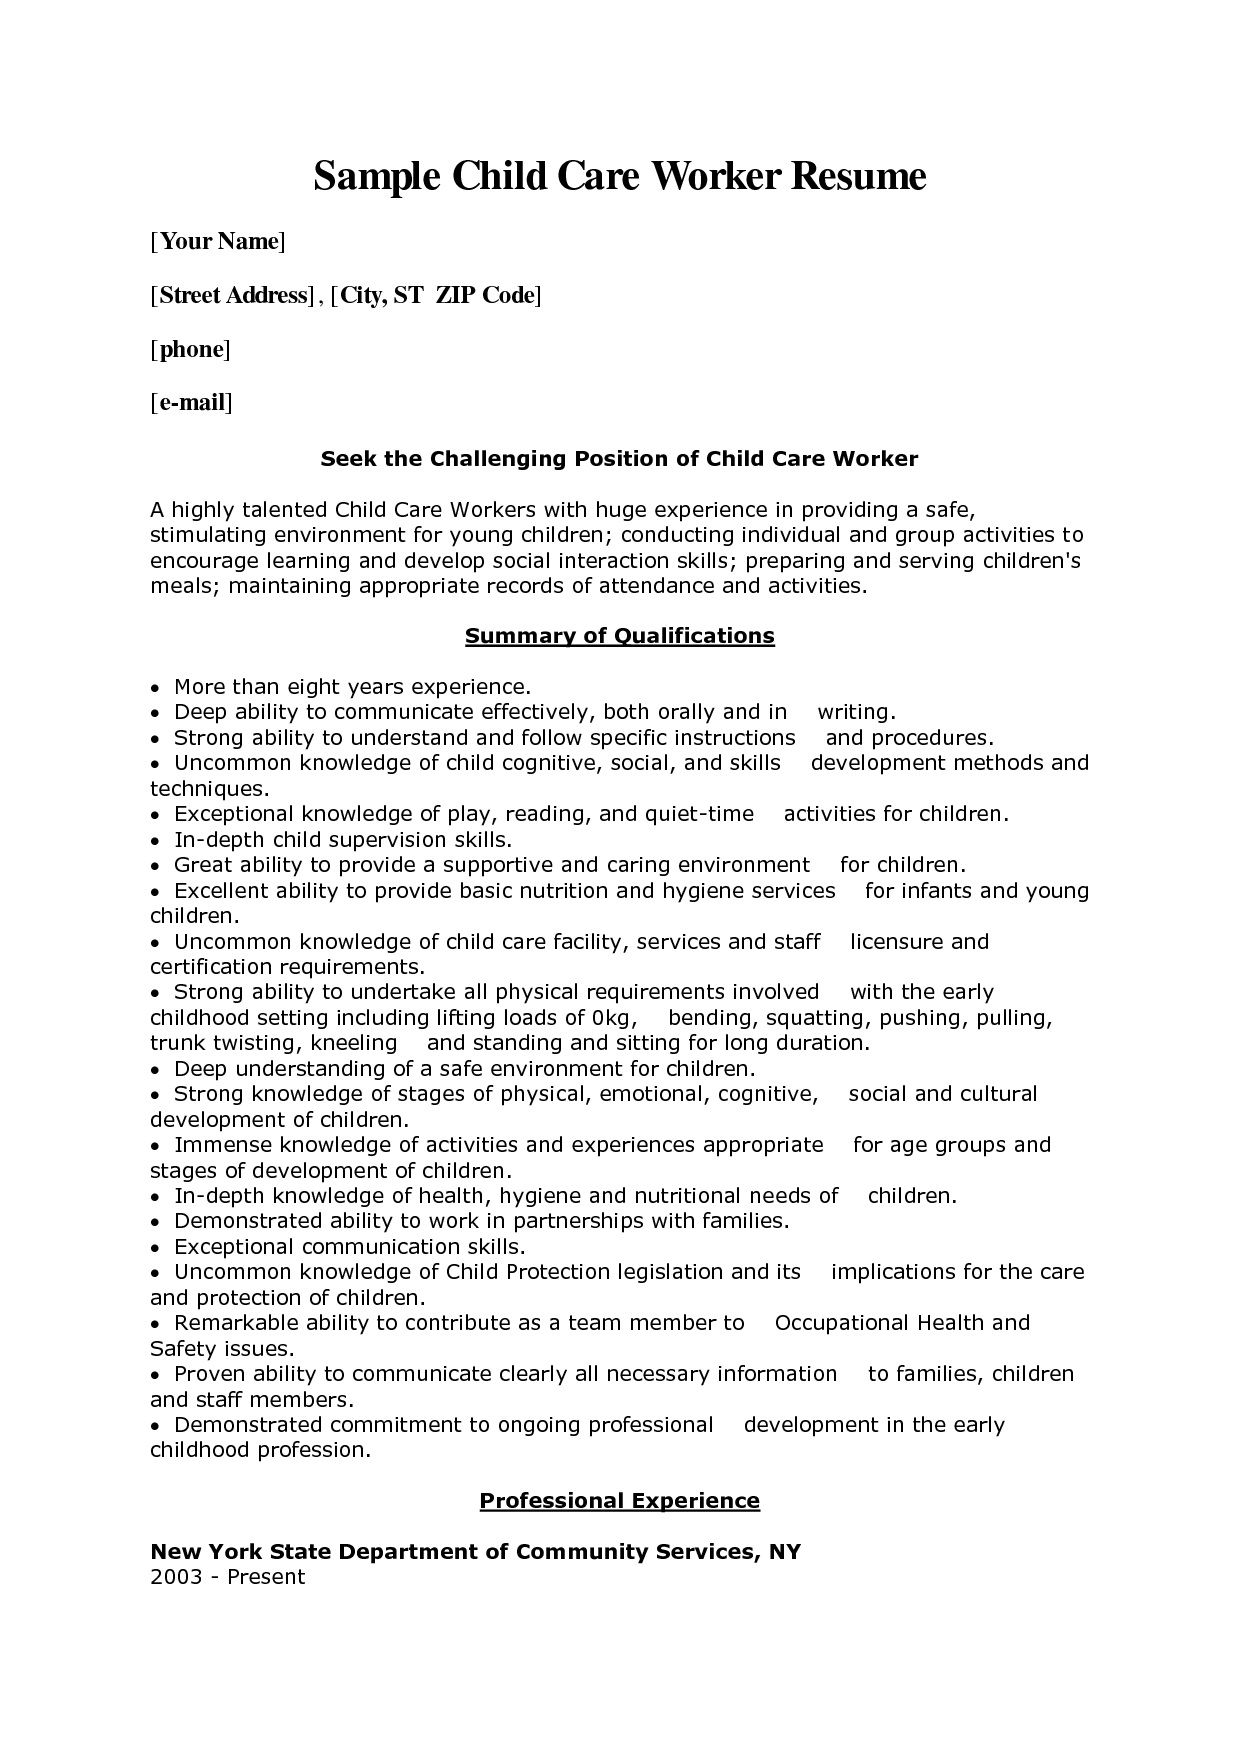 Child Care Worker Cover Letter Sample - Child Care Worker Cover Let ...